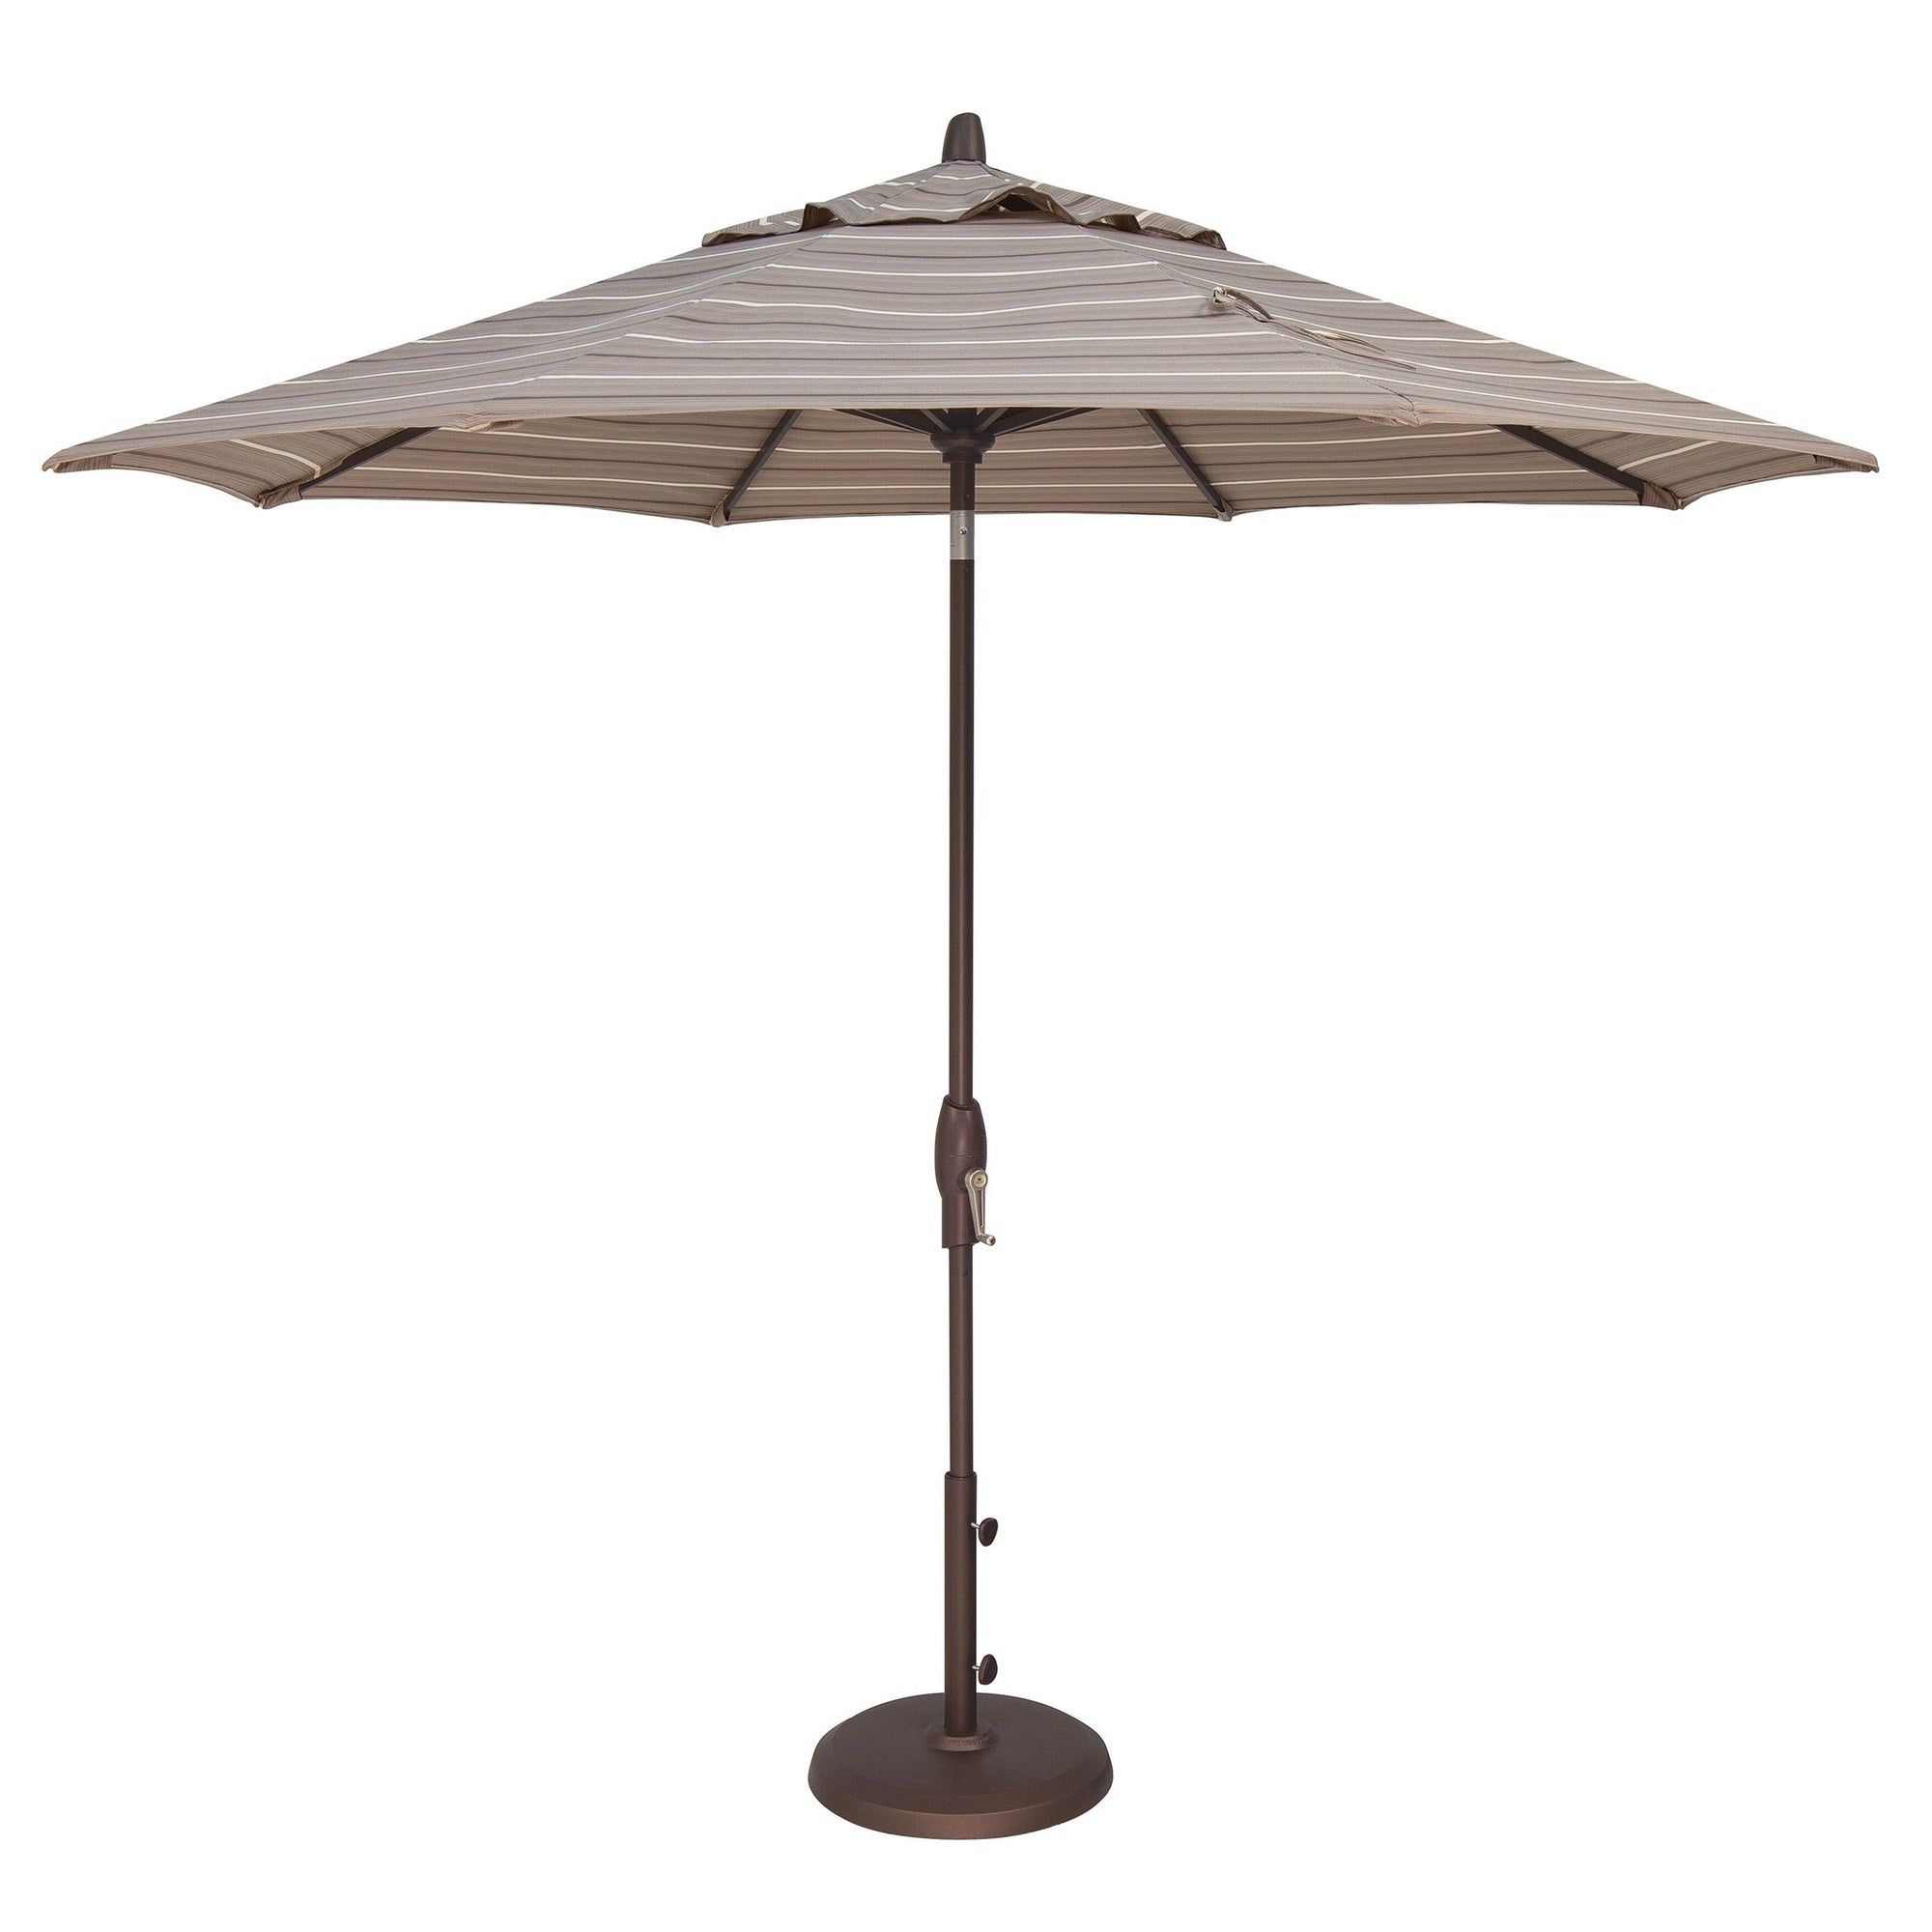 9-Foot Octagonal High-Performance Auto-Tilt Umbrella